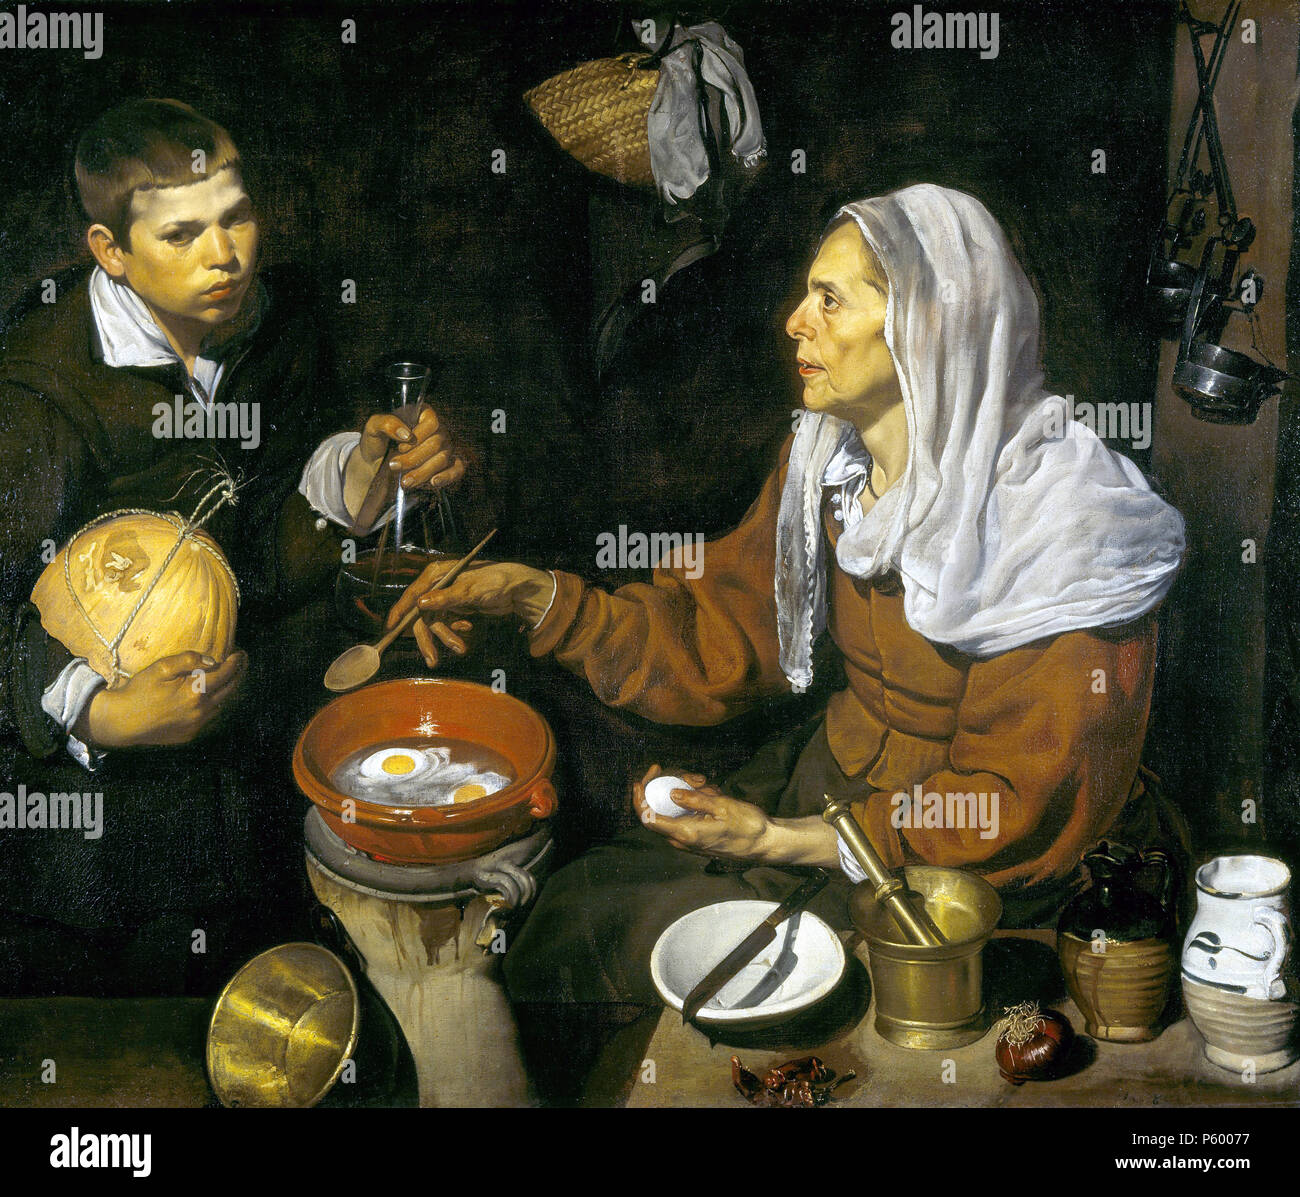 Old Woman Frying Eggs, Vieja friendo huevos by Diego Velázquez - Stock Image